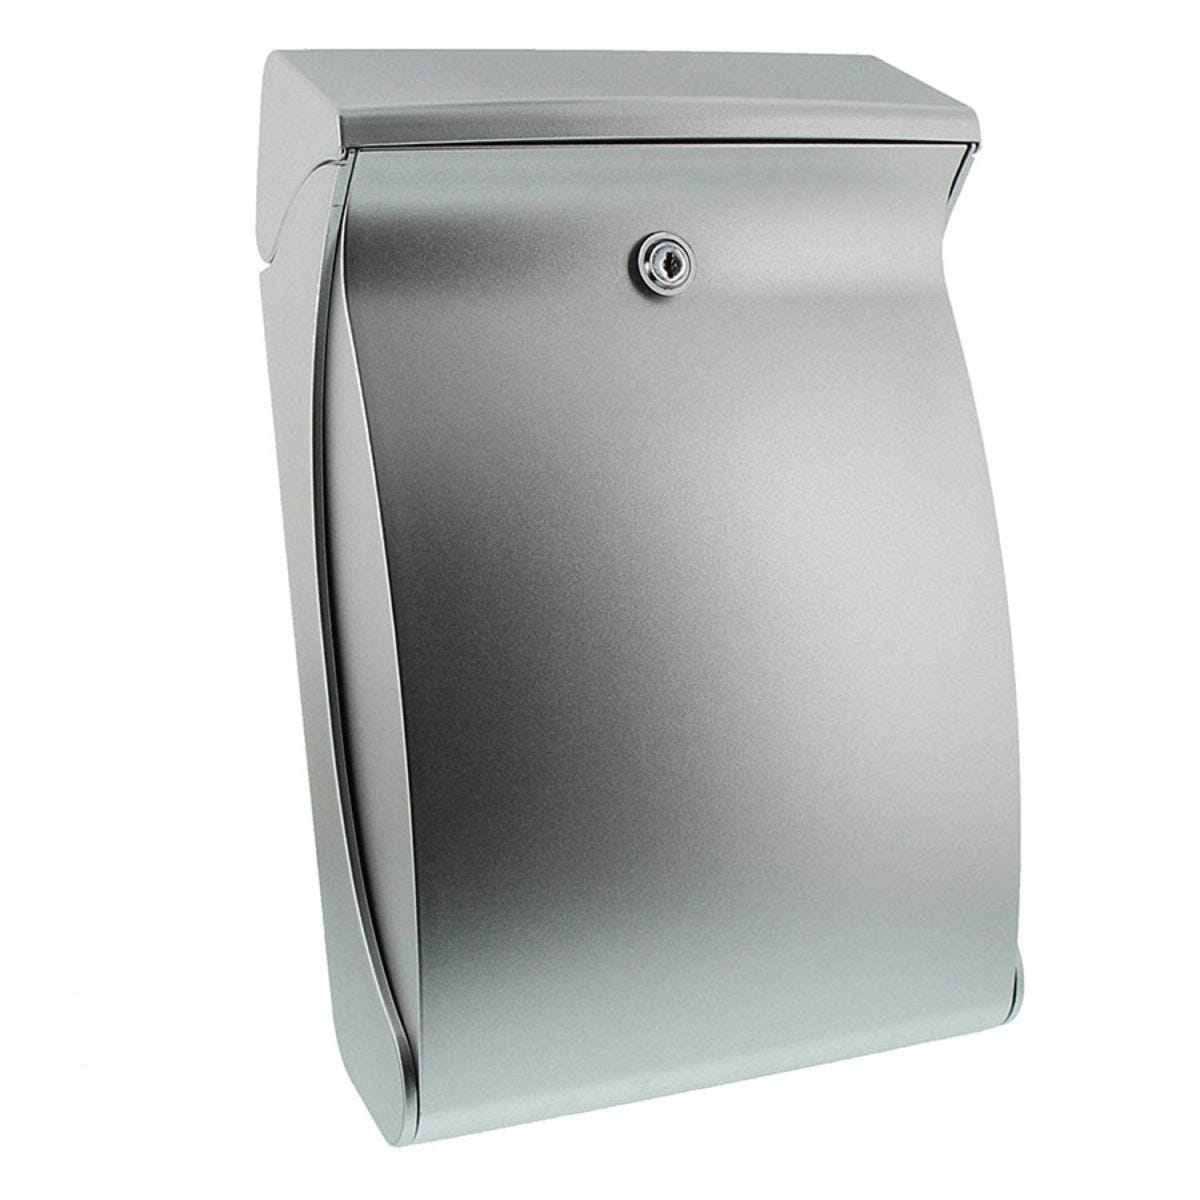 Burg-Wachter Swing Post Box - Silver